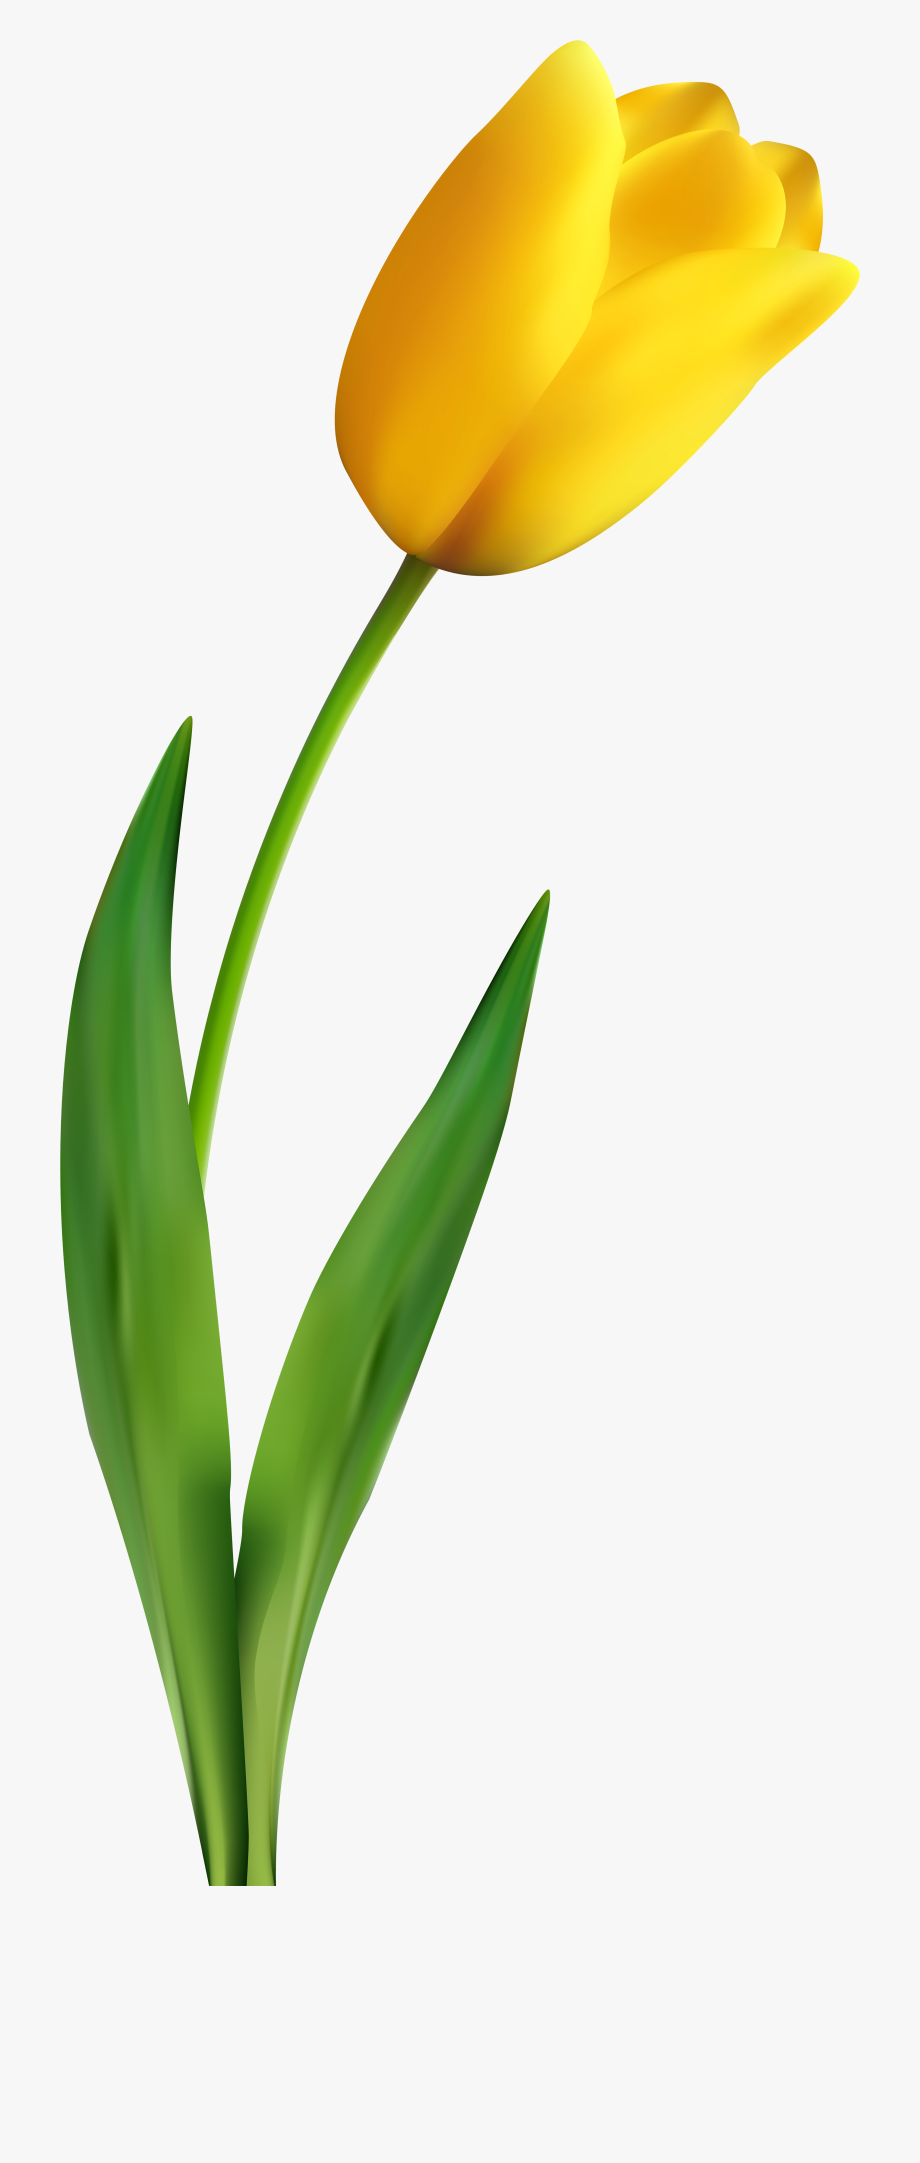 Yellow tulip clipart flower picture transparent A Yellow Tulip, Tulips, Flowers Png Image And Clipart ... picture transparent